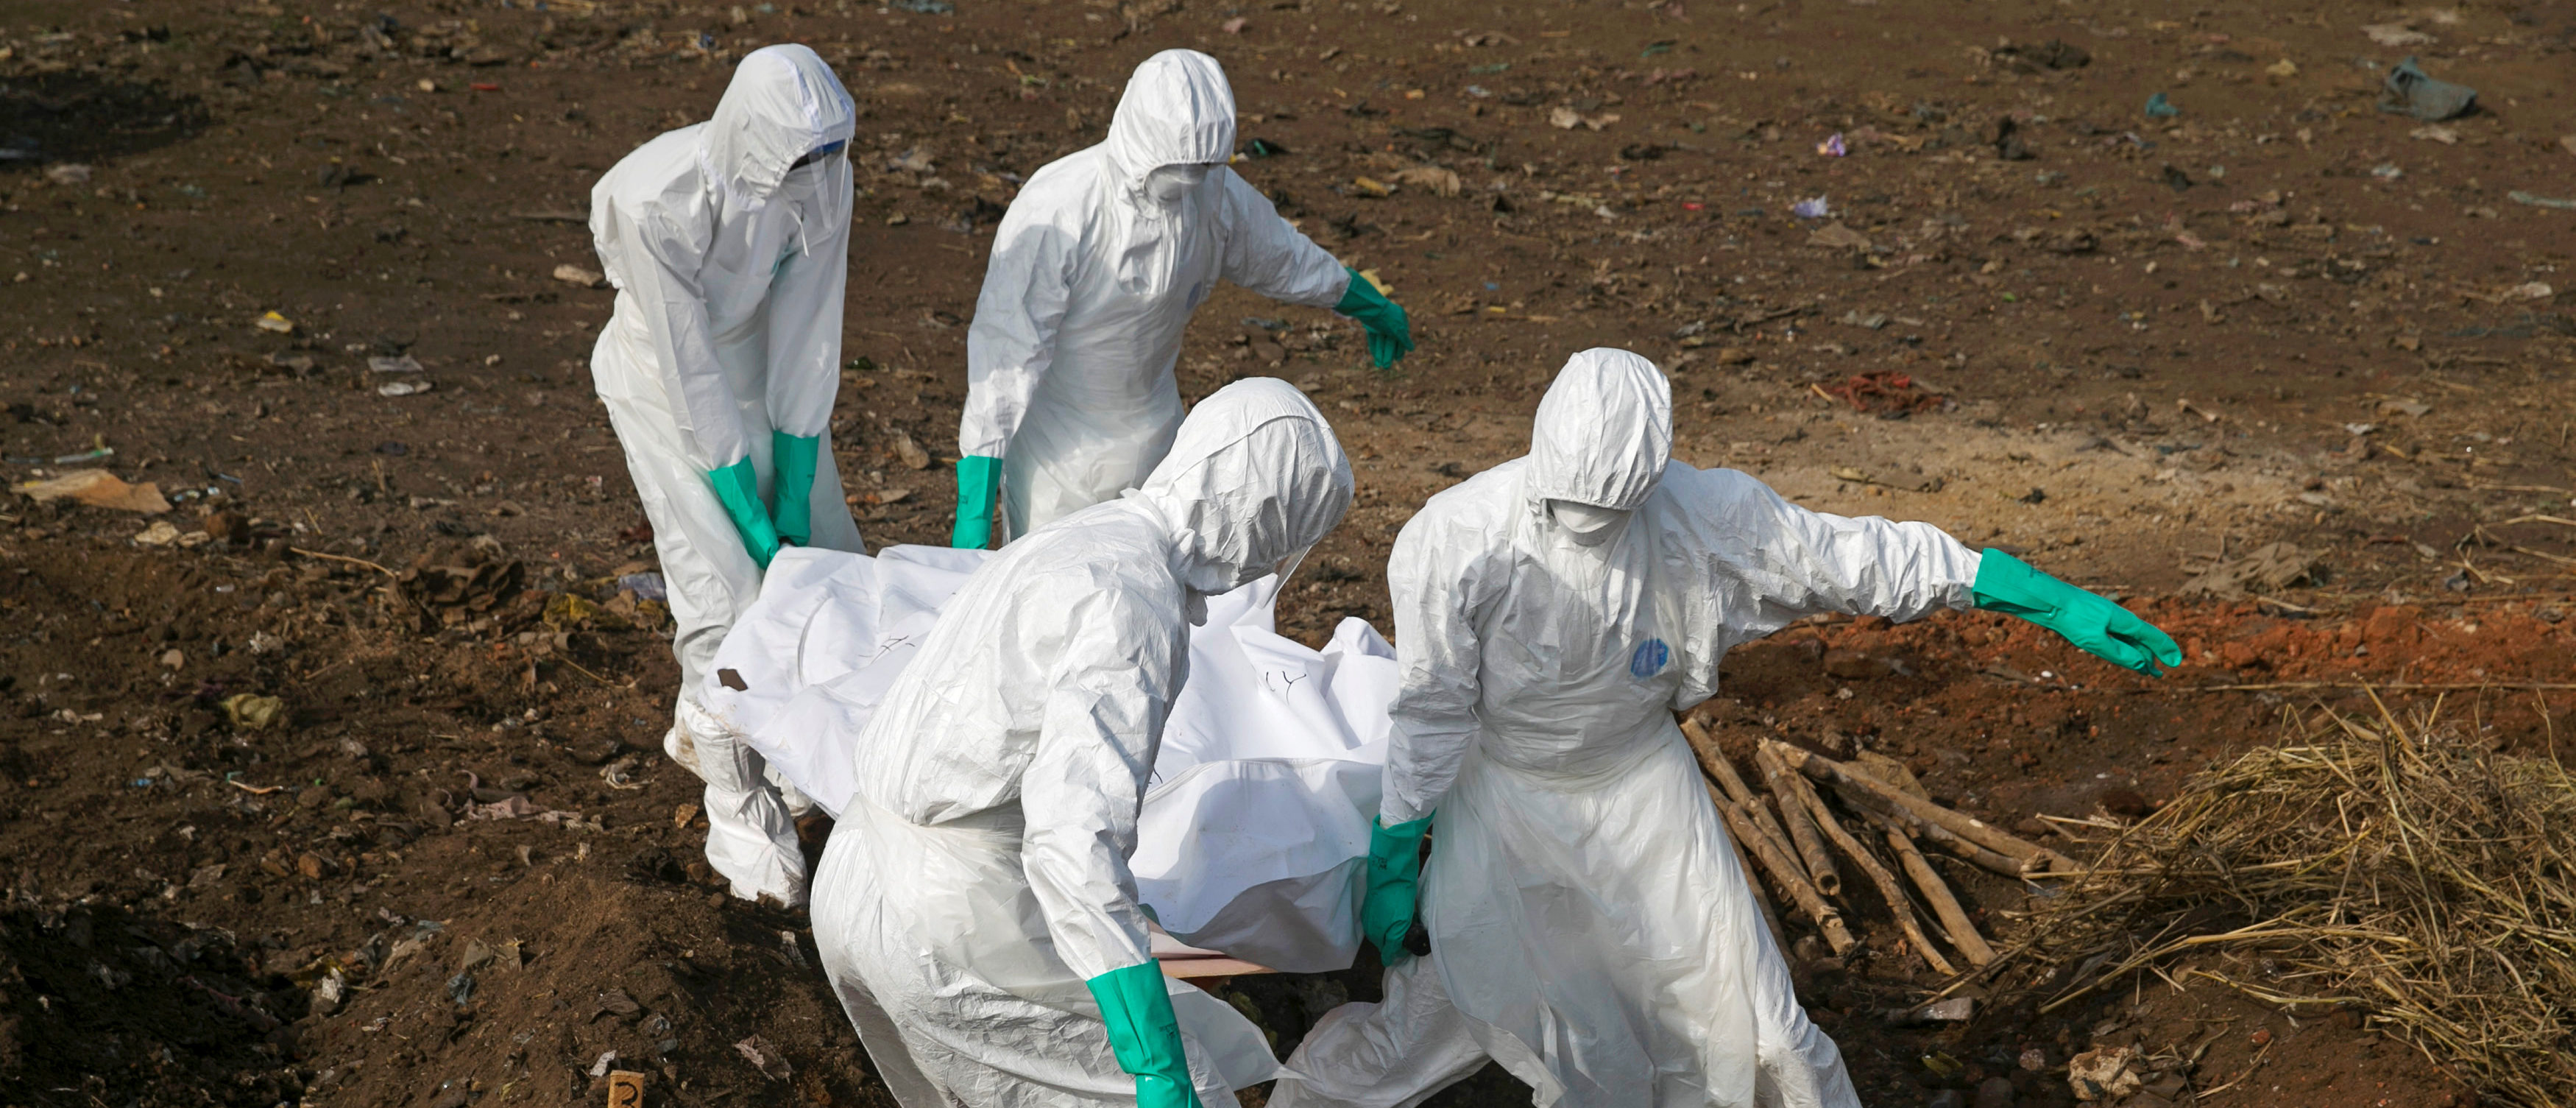 Health workers carry the body of a suspected Ebola victim for burial at a cemetery in Freetown, Sierra Leone, December 21, 2014. To match Special Report HEALTH-WHO/LEADER REUTERS/Baz Ratner/File Photo - S1BEUCYTJCAB